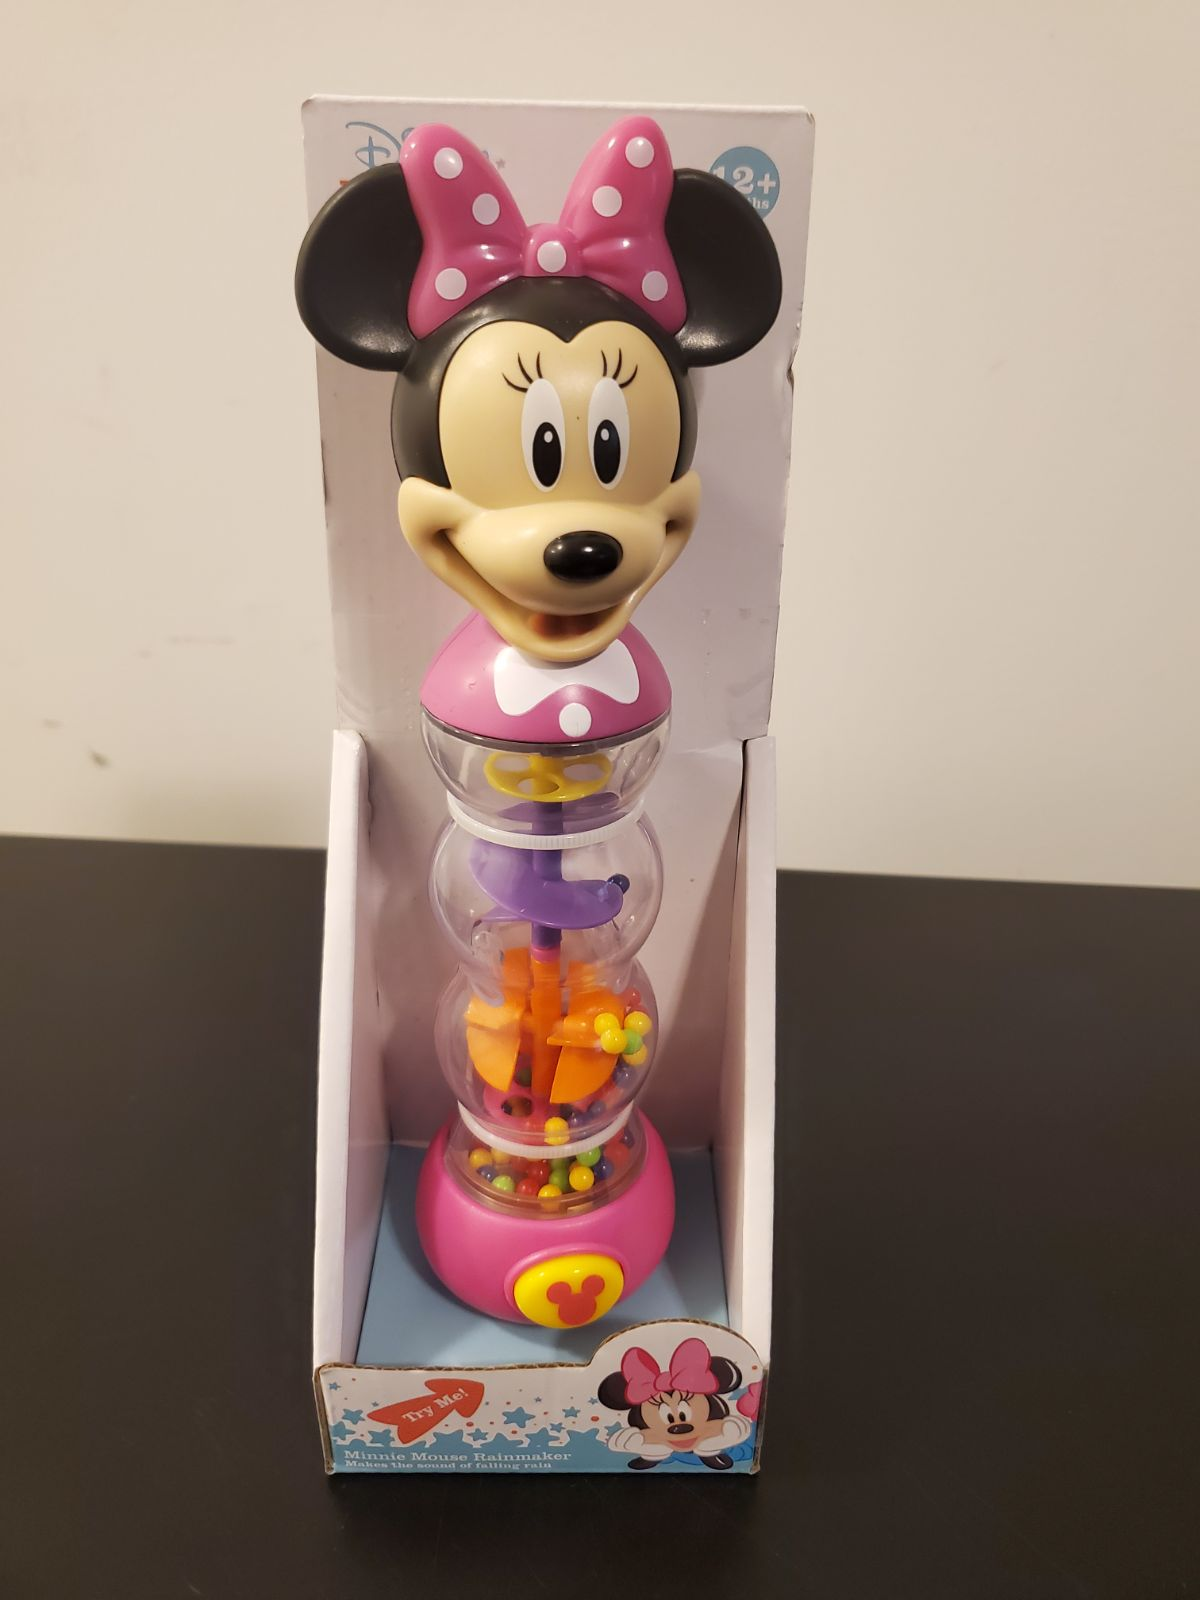 Minnie Mouse Rainmaker